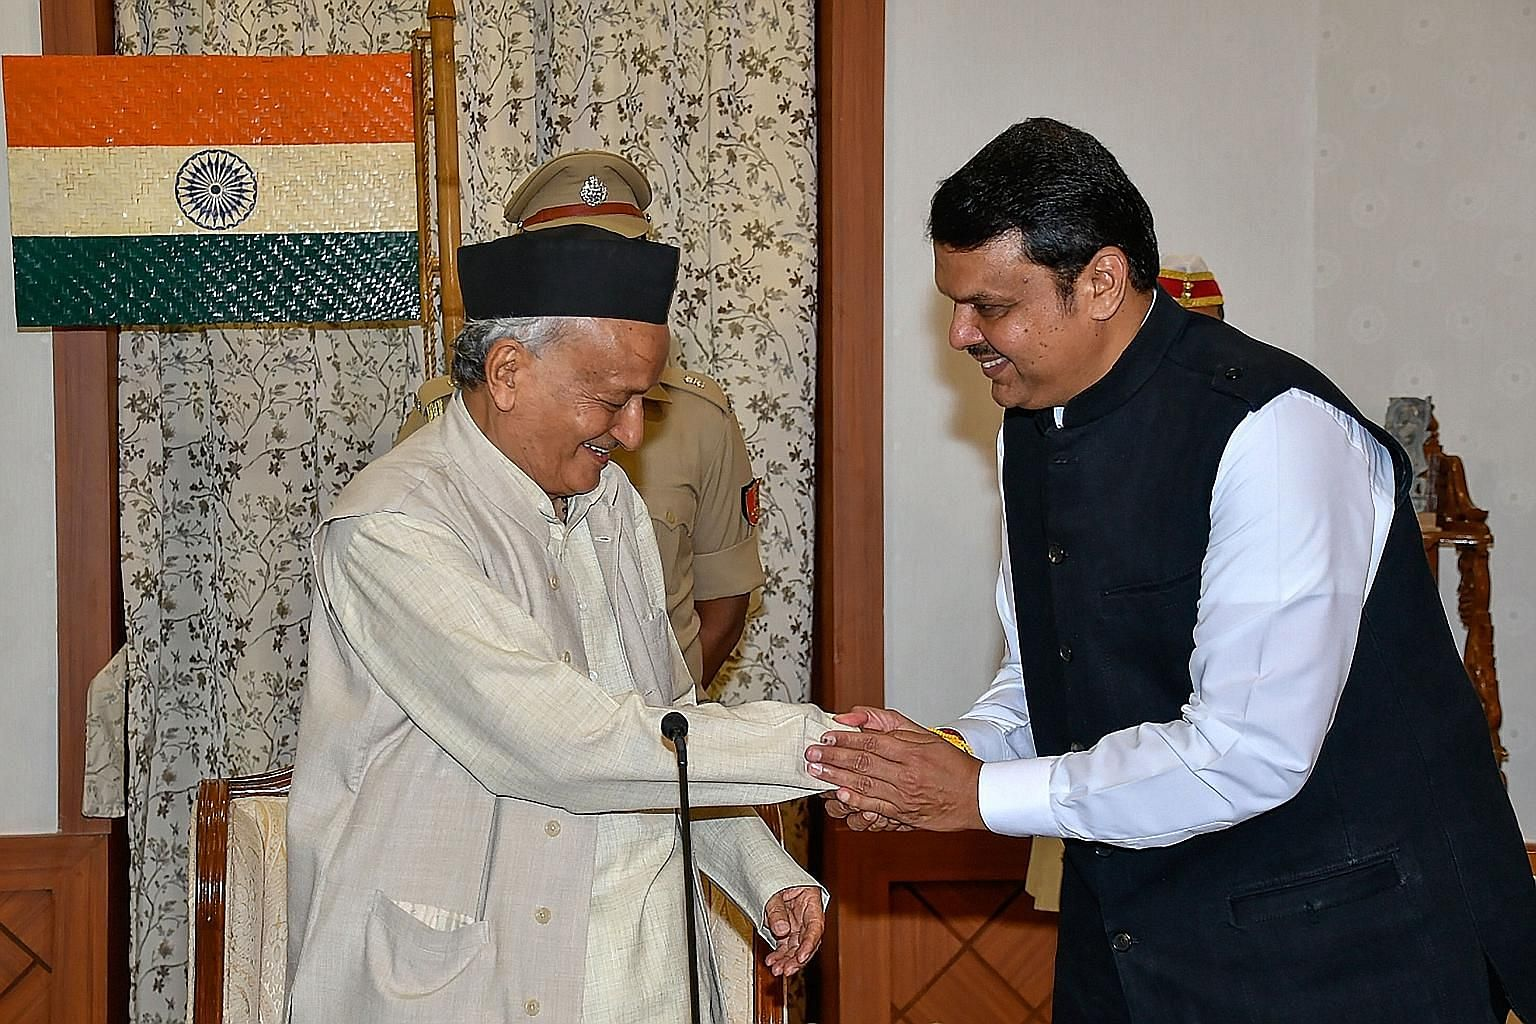 Maharashtra Governor Bhagat Singh Koshyari (left) greeting BJP's Devendra Fadnavis after his swearing-in as chief minister last Saturday. Mr Fadnavis resigned from his post yesterday.